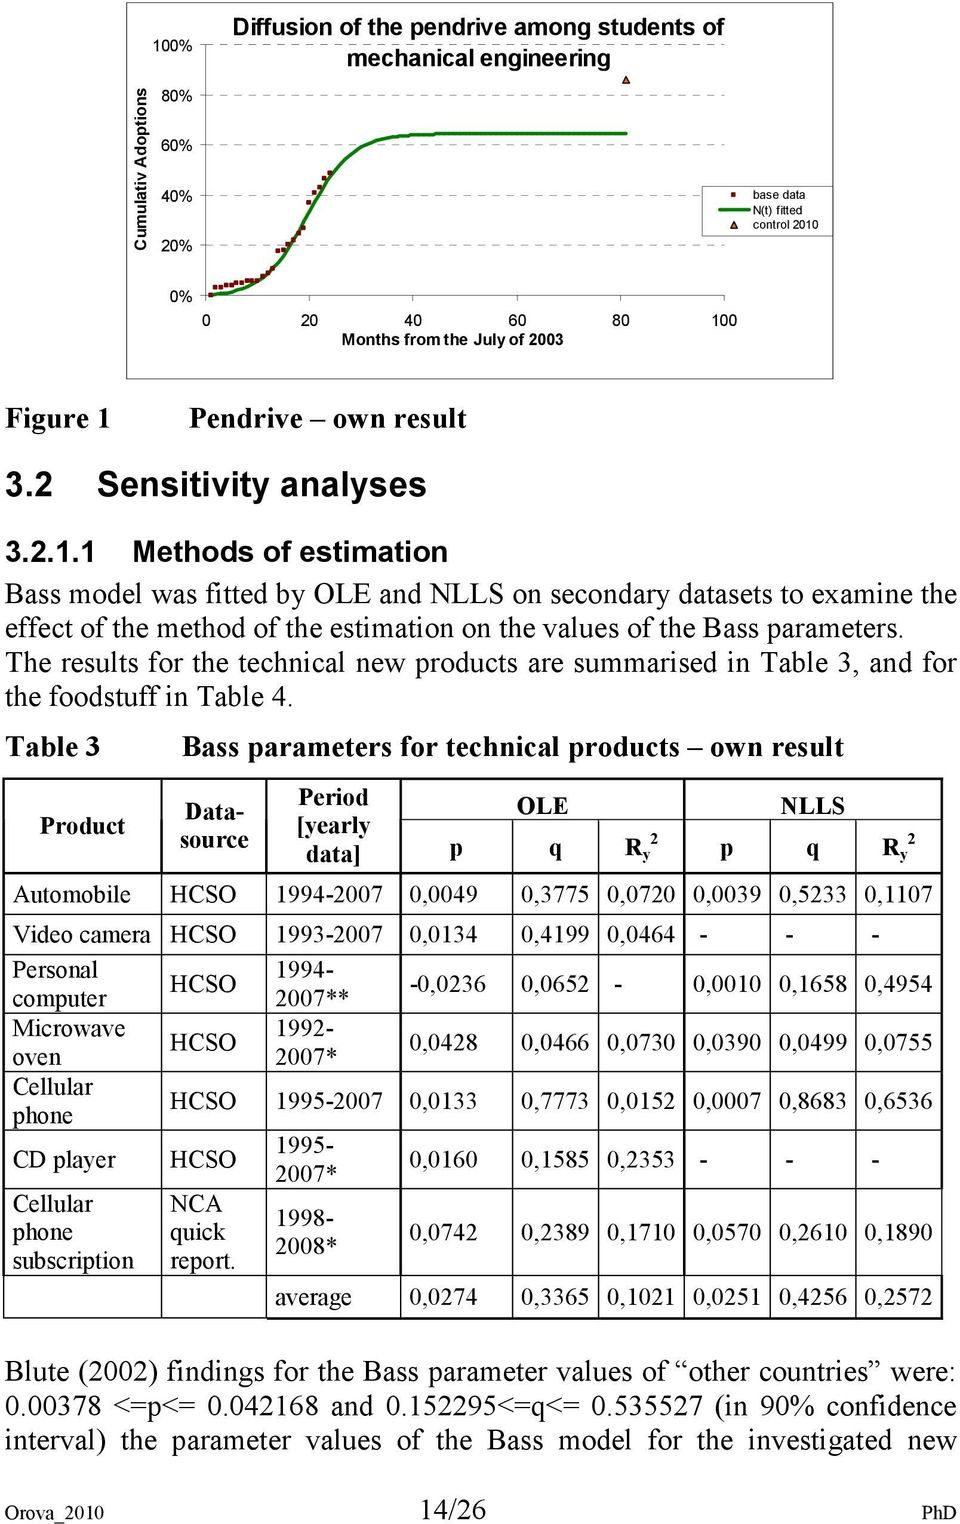 The results for the technical new products are summarised in Table 3, and for the foodstuff in Table 4.